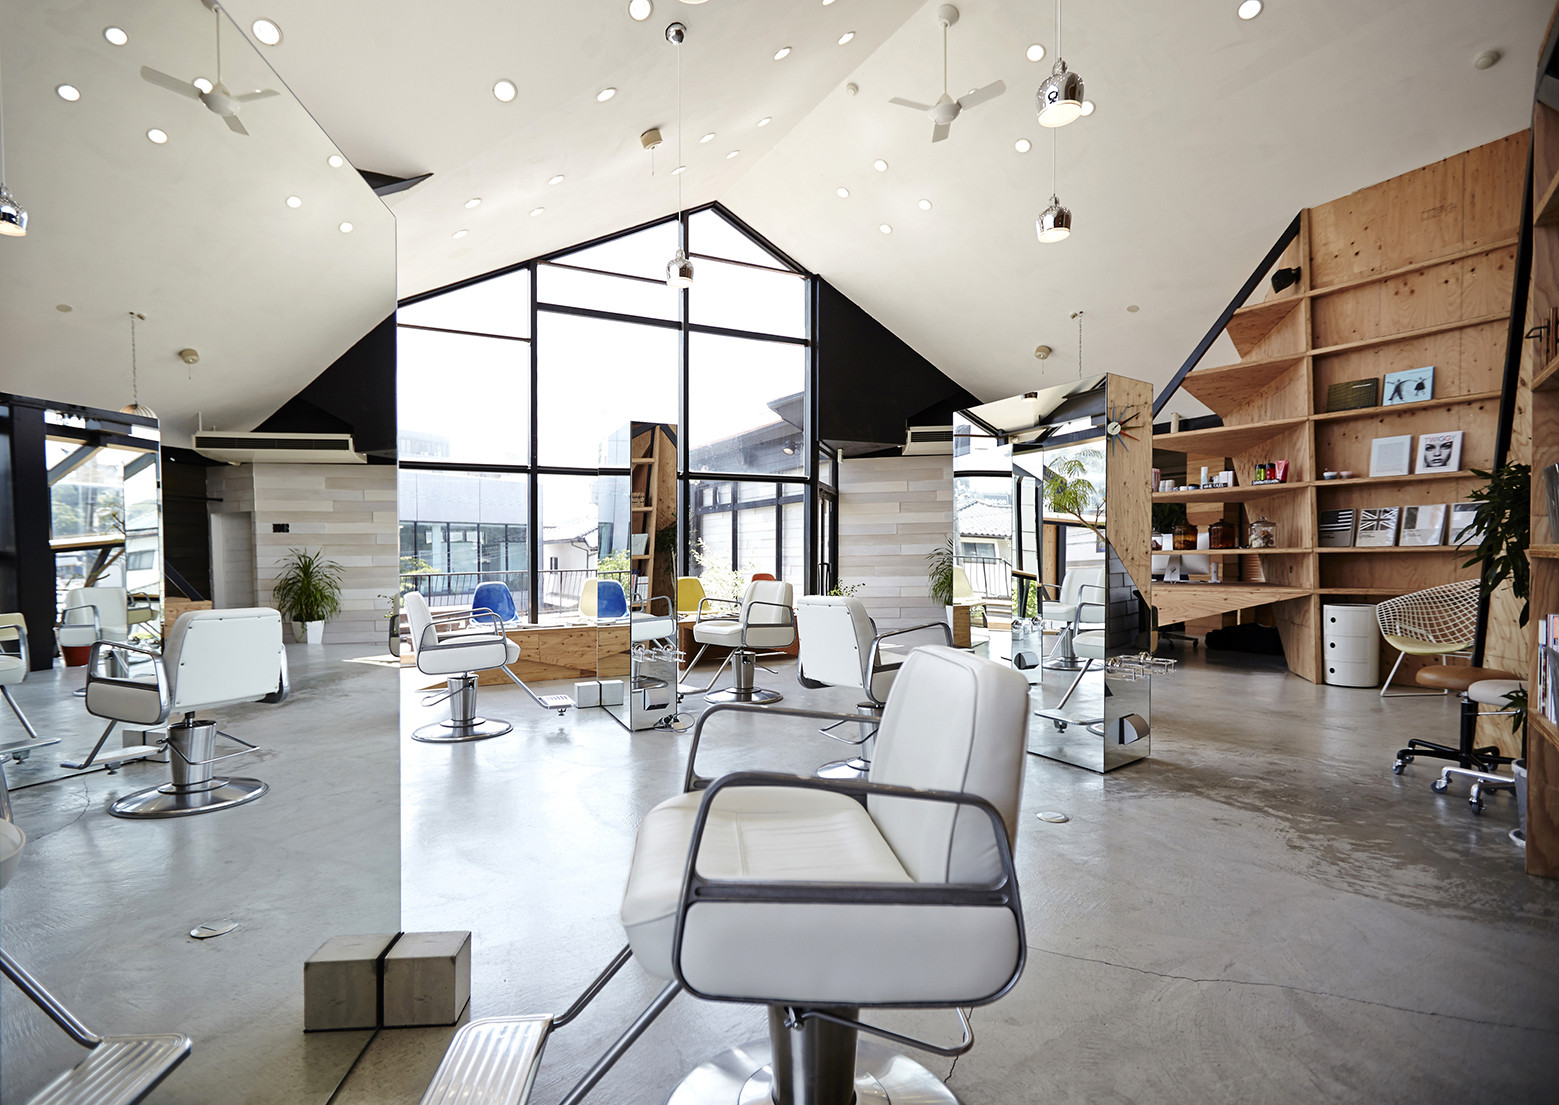 Hair salon slundre bhis archdaily for Architecture interieur salon